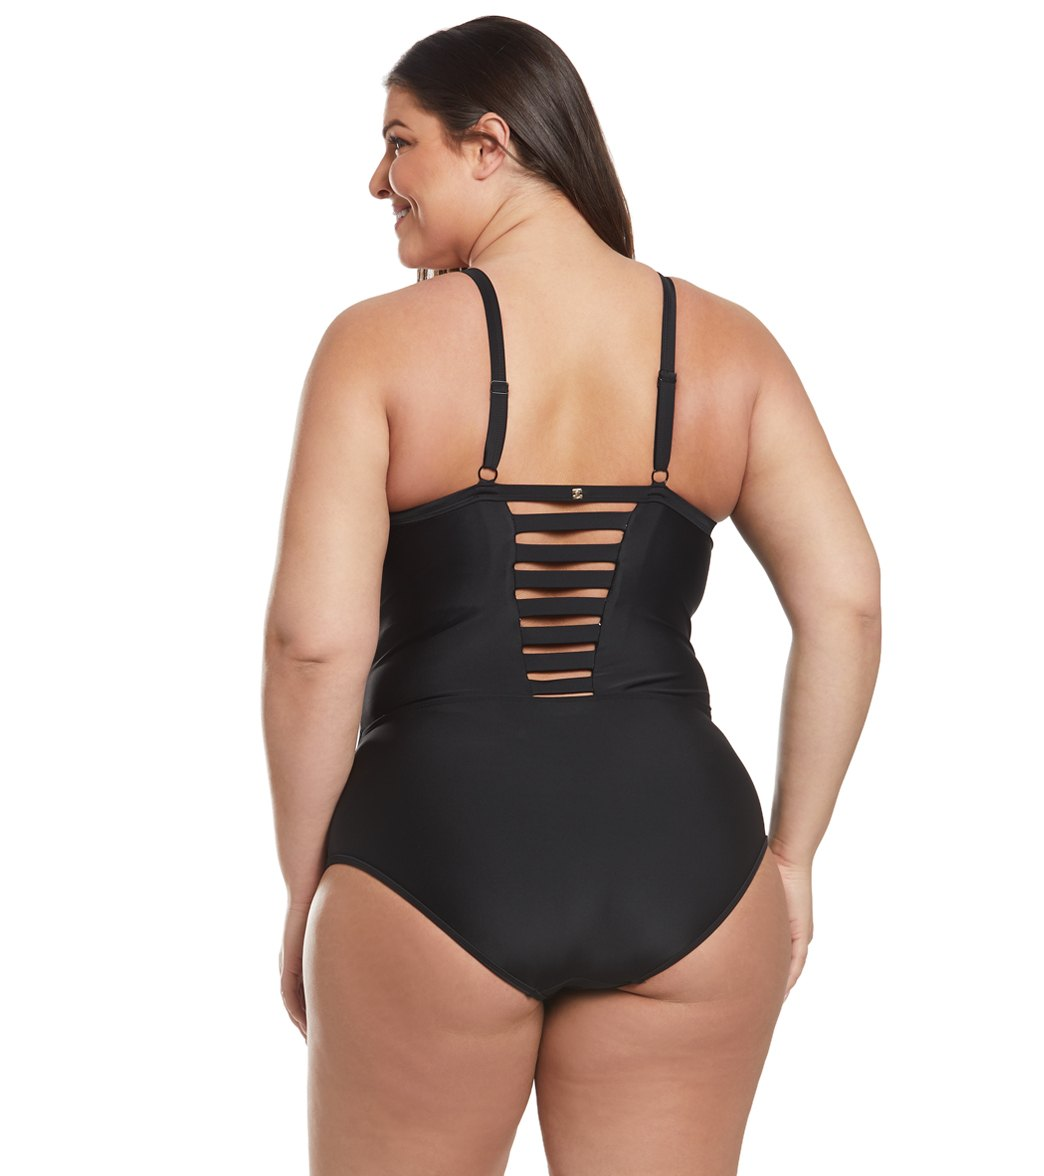 08c8f1823a054 Skye Plus Size Solid Surface One Piece Swimsuit at SwimOutlet.com ...